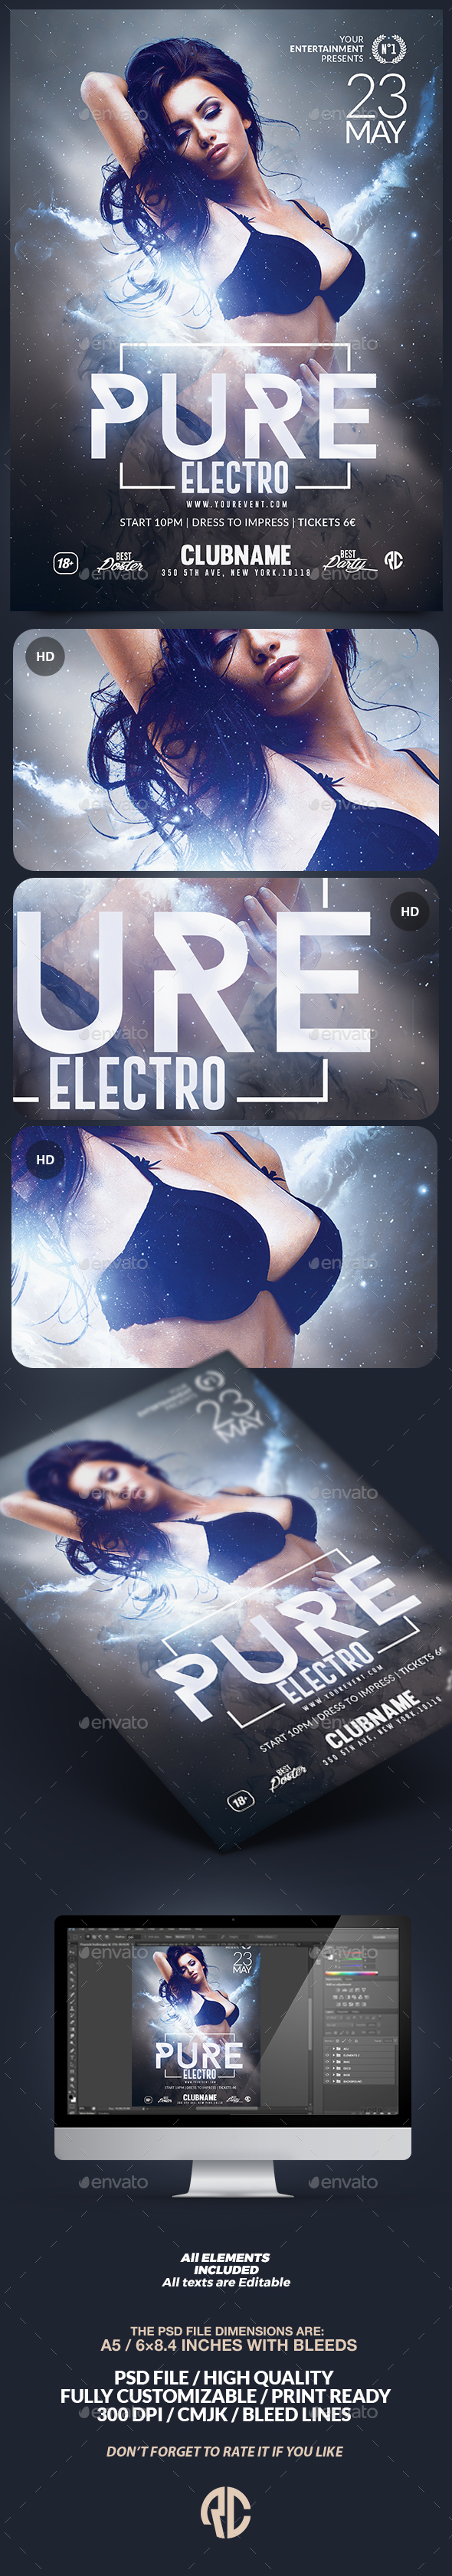 Pure Electro Flyer | Psd Template - Clubs & Parties Events